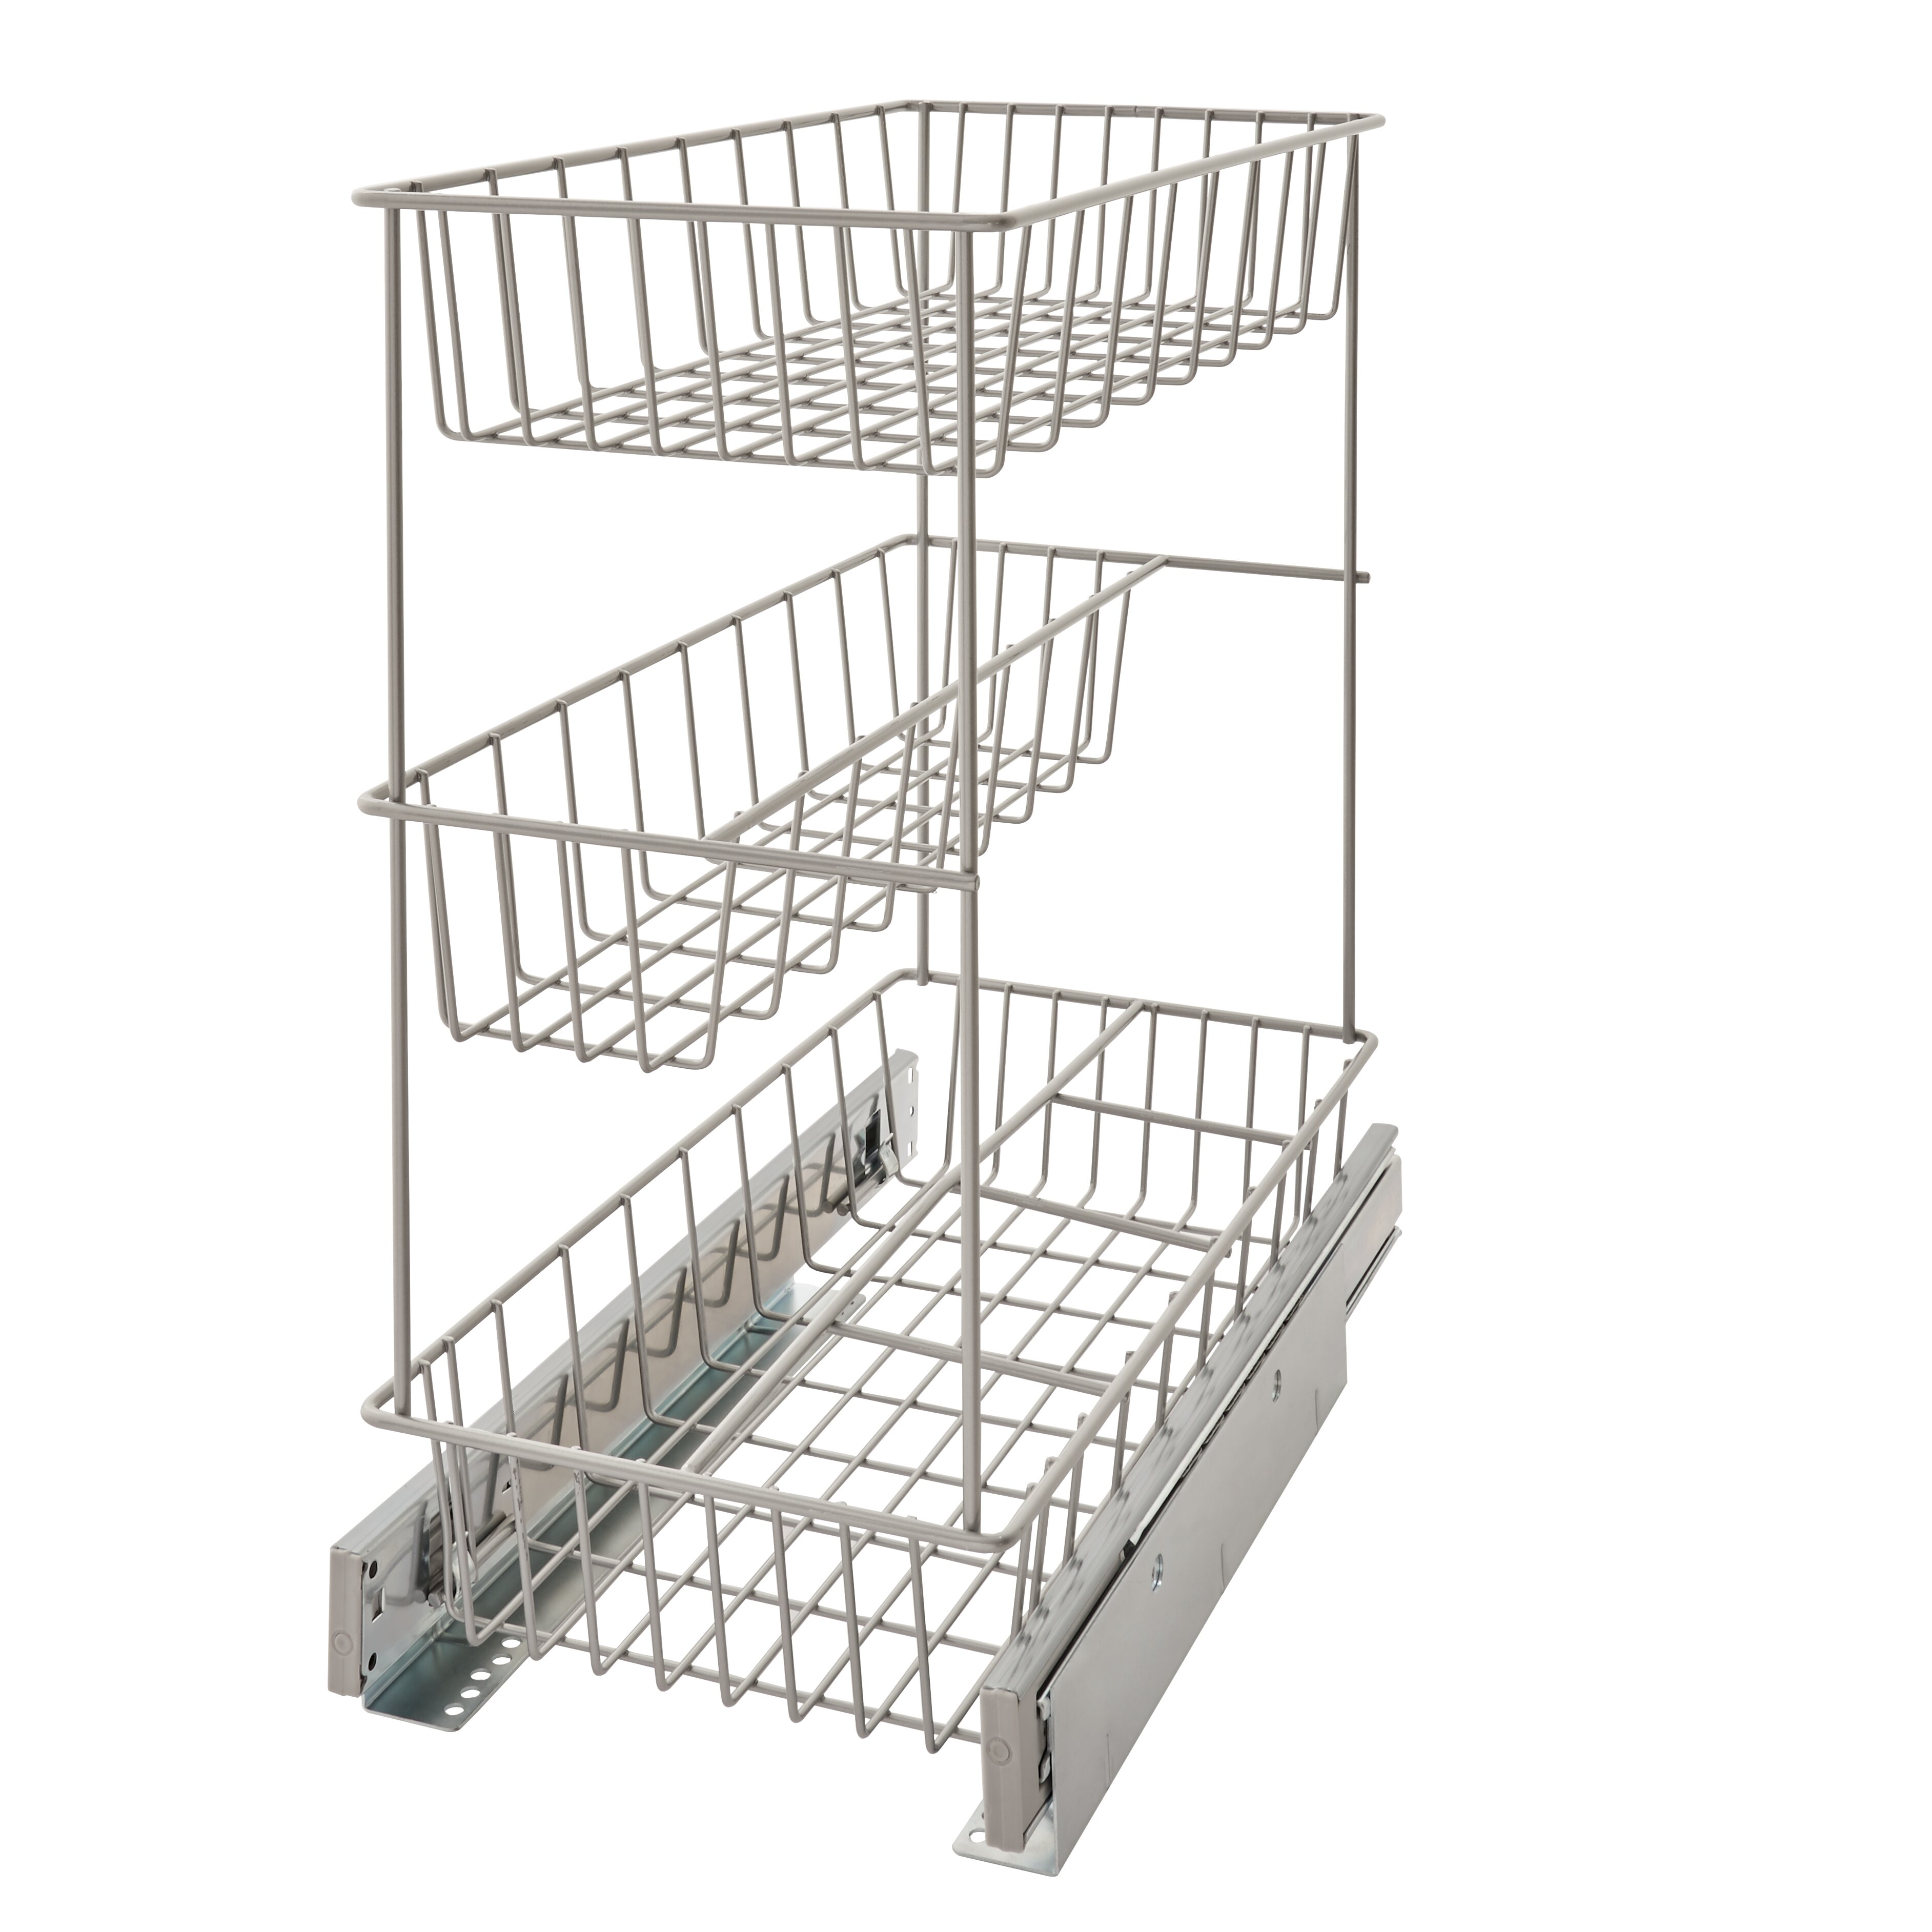 Charming ClosetMaid 3 Tier Compact Kitchen Cabinet Pull Out Basket